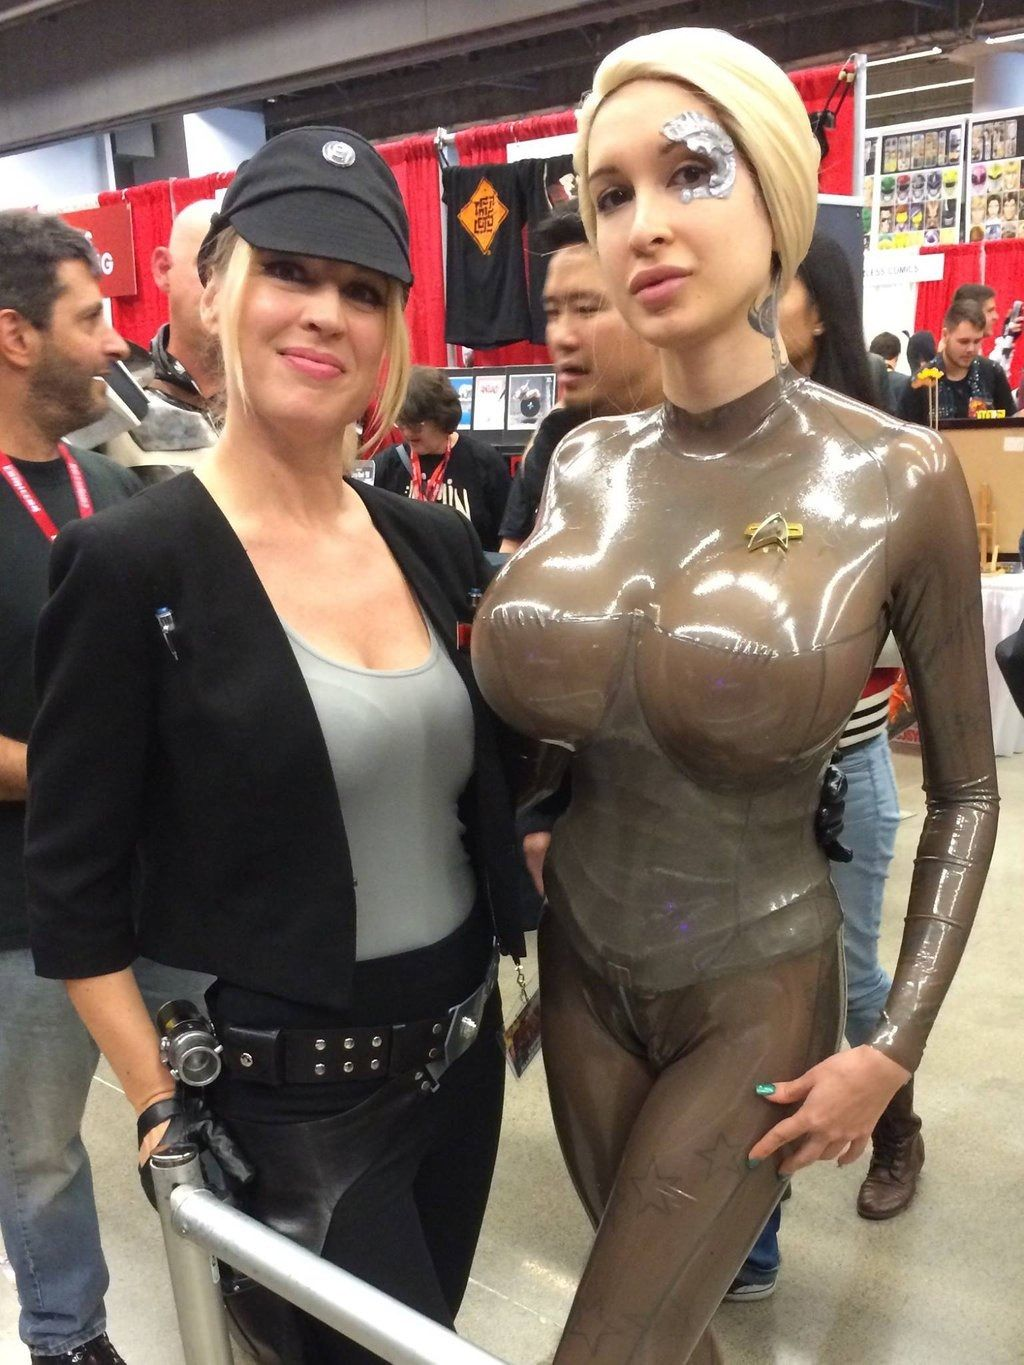 ariane saint amour cosplay Seven of Nine at montreal Comiccon! by Ariane-Saint-Amour